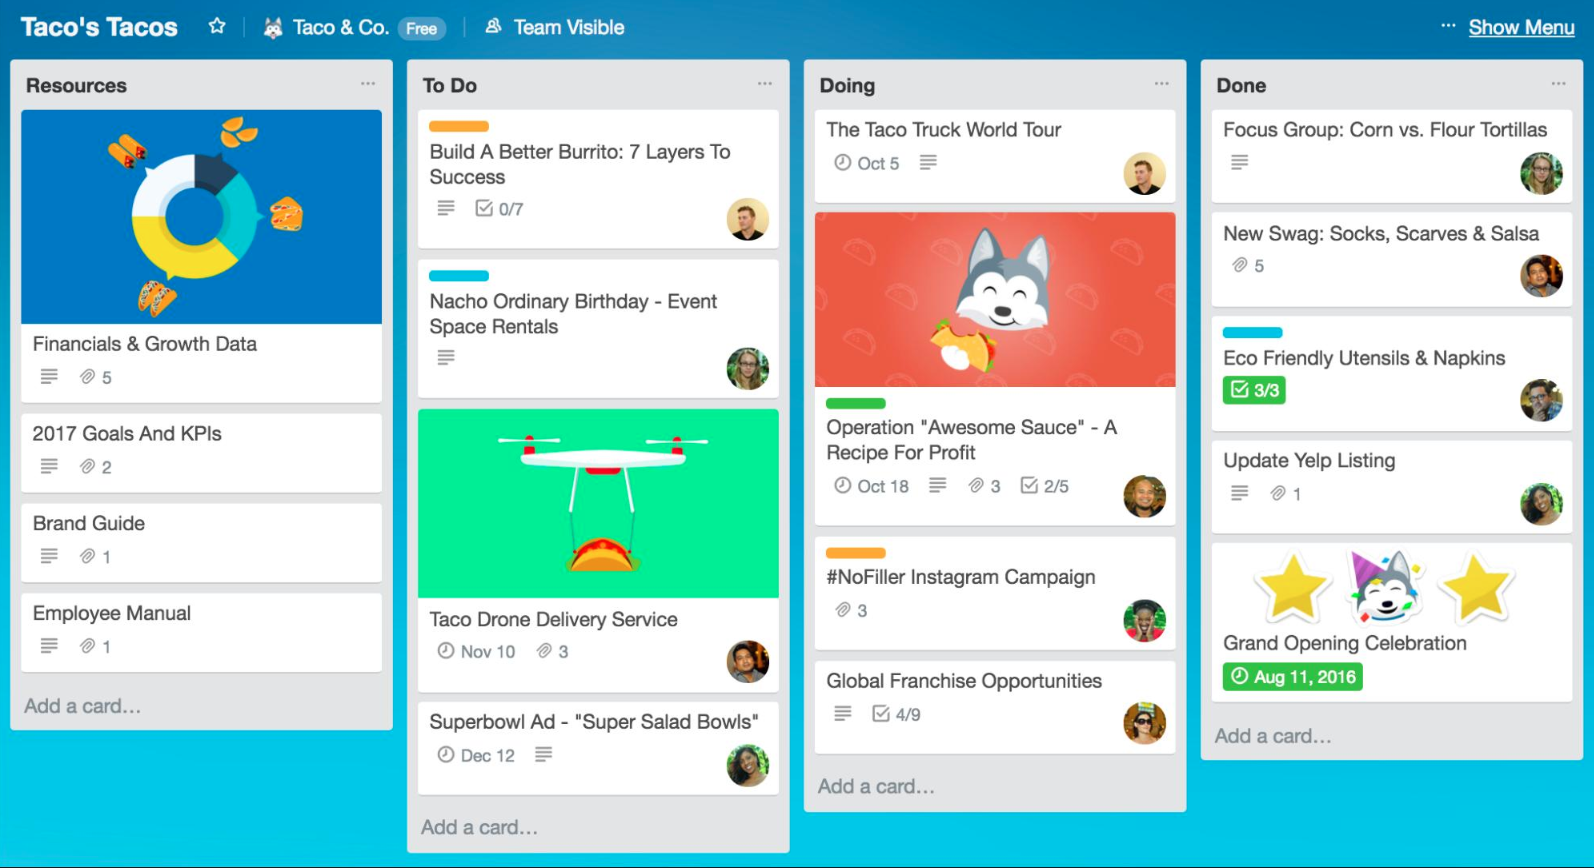 Get on top of your projects by putting the to do's in a kan ban view within Trello